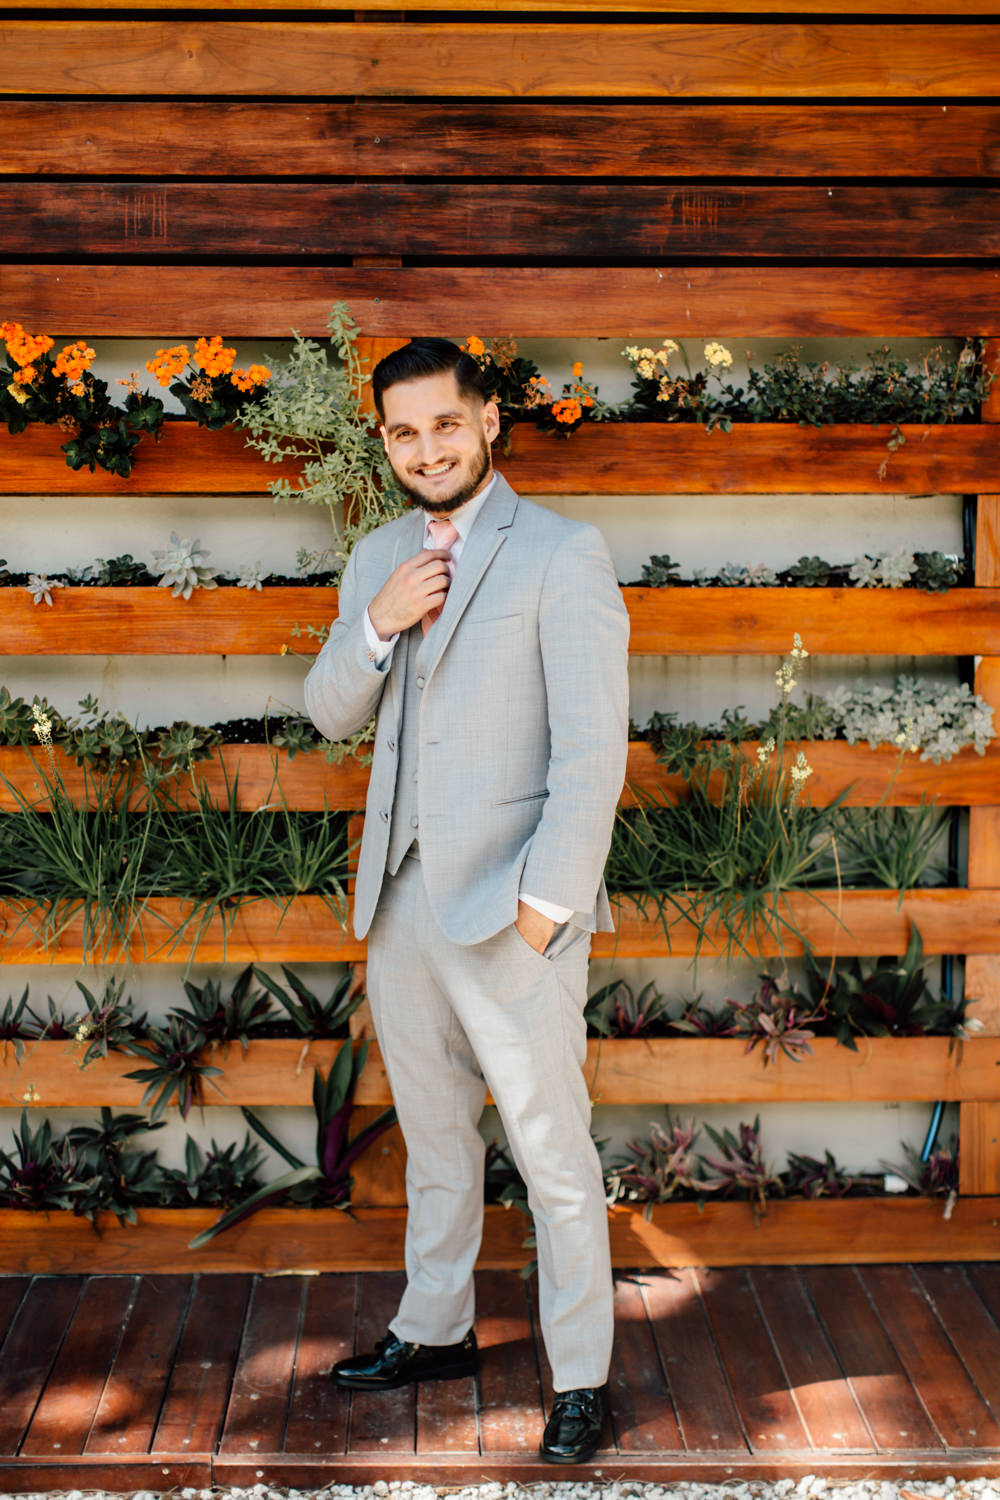 Grey Suit Groom Pink Tie Emotional Outdoor Wedding Laura Memory Photography